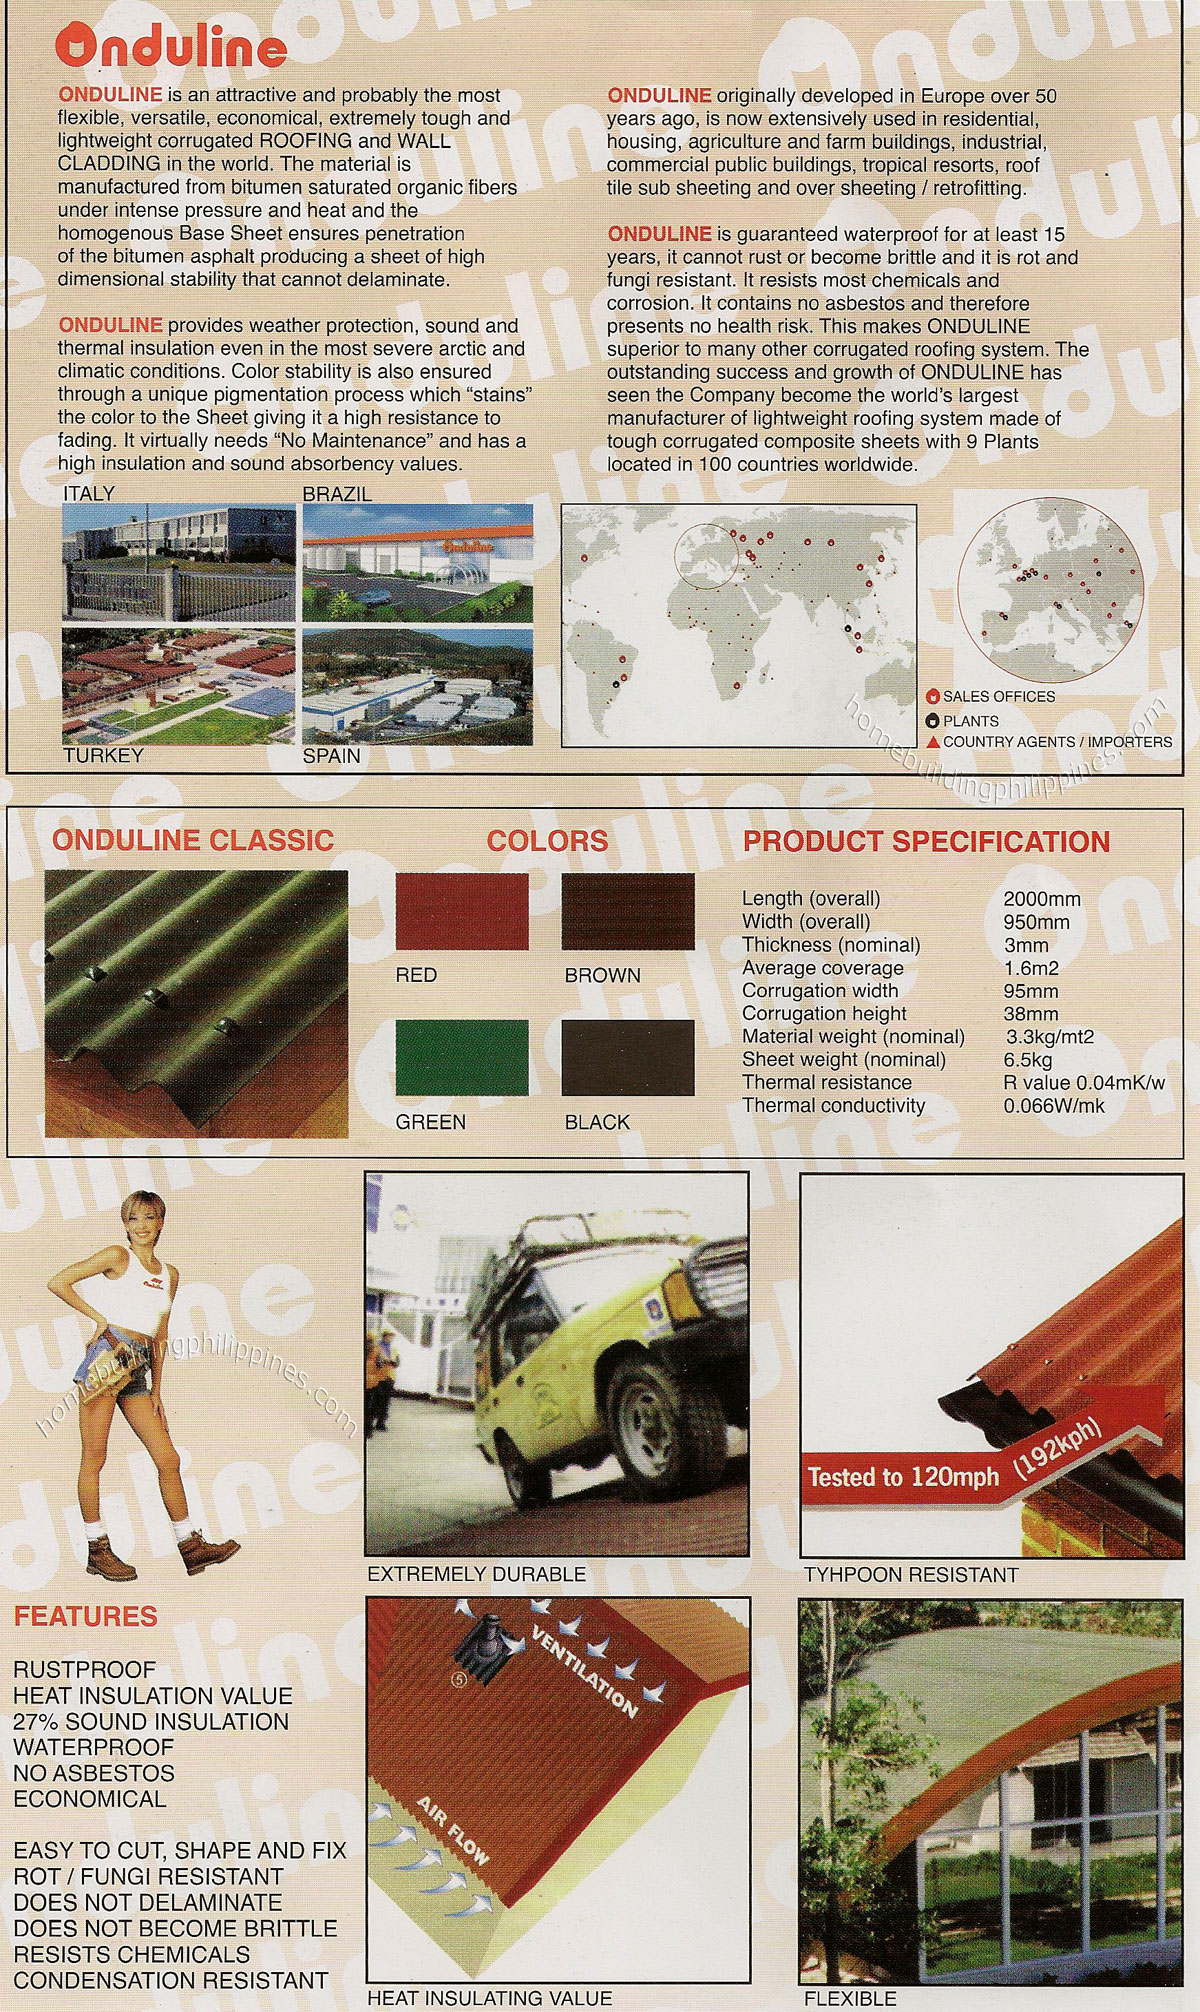 Onduline Roofing And Wall Cladding Colors Specifications